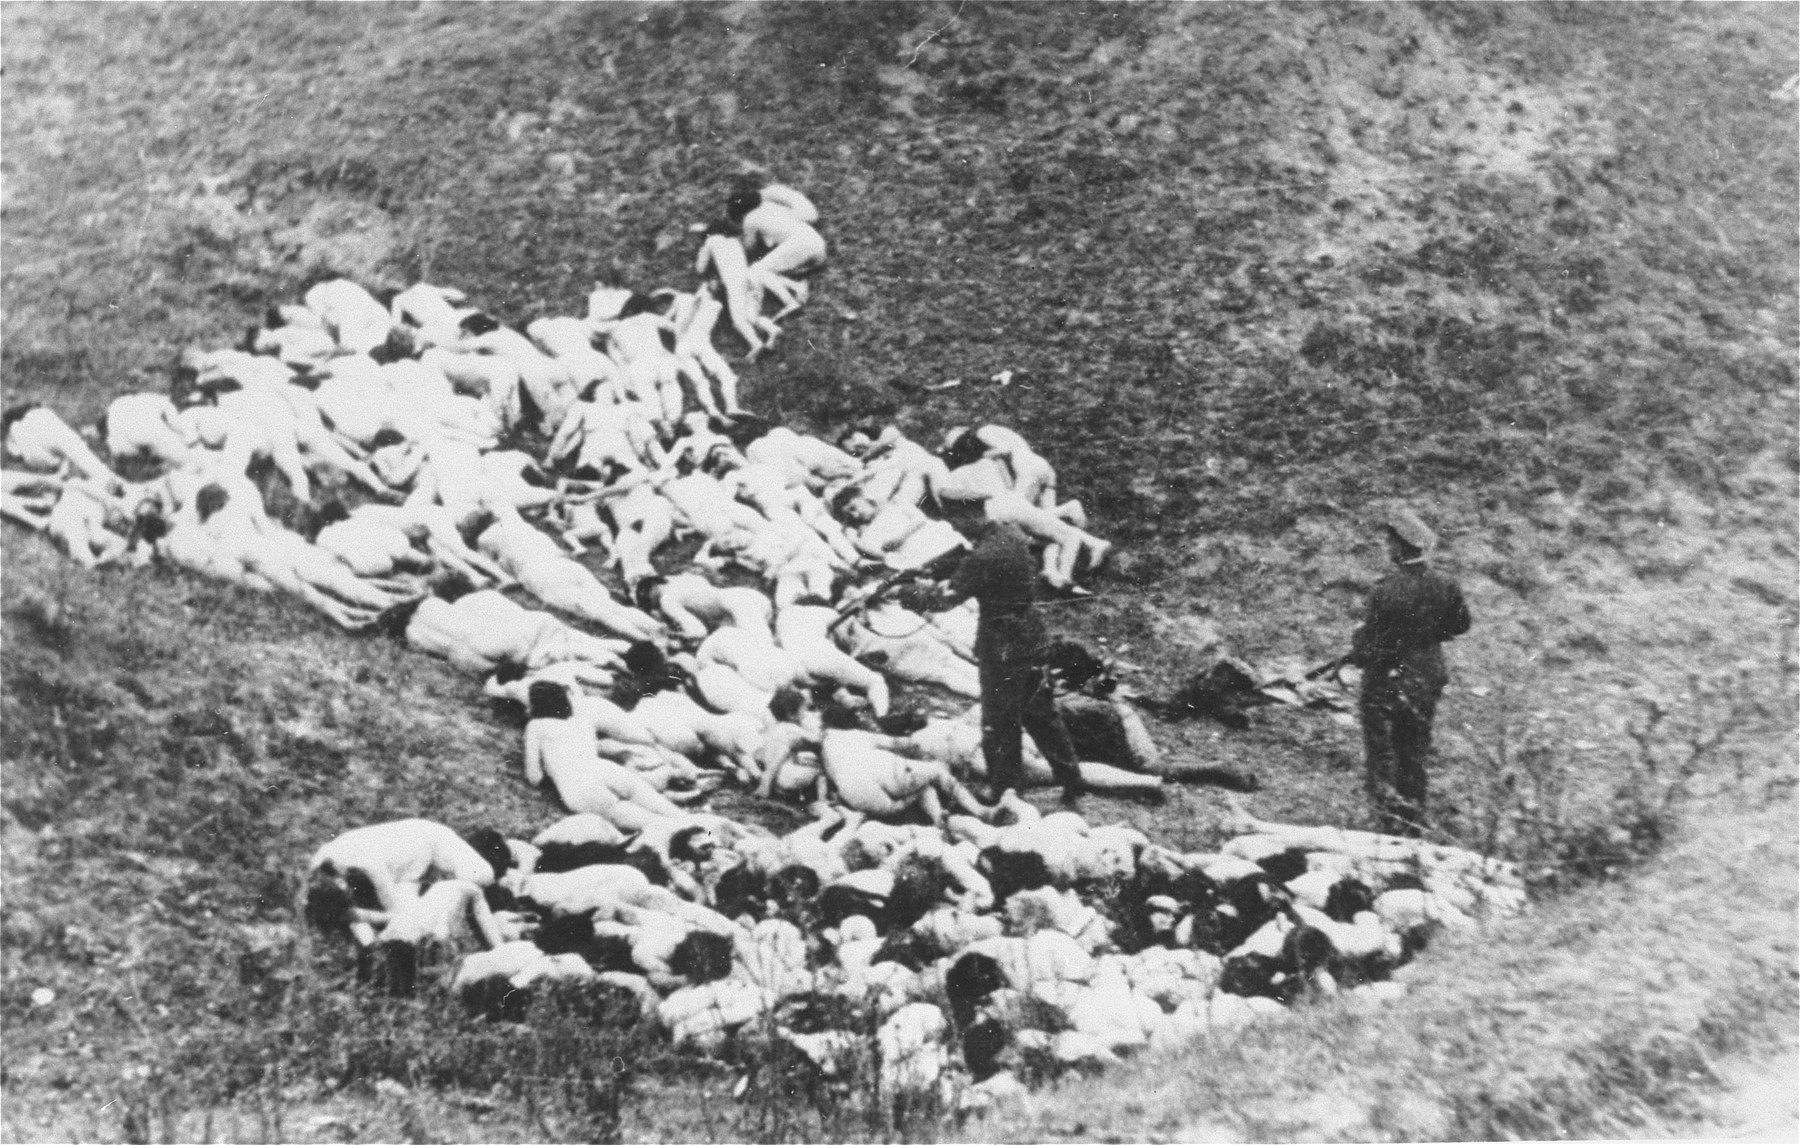 A German police officer shoots Jewish women still alive after a mass execution of Jews from the Mizocz ghetto.  According to the Zentrale Stelle in Germany (Zst. II 204 AR 1218/70), these Jews were collected by the German Gendarmerie and Ukrainian Schutzmannschaft during the liquidation of the Mizocz ghetto, which held roughly 1,700 Jews.  On the eve of the ghetto's liquidation (13 October 1942), some of the inhabitants rose up against the Germans and were defeated after a short battle.  The remaining members of the community were transported from the ghetto to this ravine in the Sdolbunov Gebietskommissariat, south of Rovno, where they were executed.  Information regarding this action, including the photos, were acquired from a man named Hille, who was the Bezirks-Oberwachtmeister of the Gendarmerie at the time.  Hille apparently gave the five photos (there were originally seven) to the company lawyer of a textile firm in Kunert, Czechoslovakia, where he worked as a doorman after the war.  The Czech government confiscated the photos from the lawyer in 1946 and they subsequently became public.  That the photos indeed show the shooting of Jews in connection with the liquidation of the ghetto was also confirmed by a statement of Gendarmerie-Gebietsfuehrer Josef Paur in 1961.